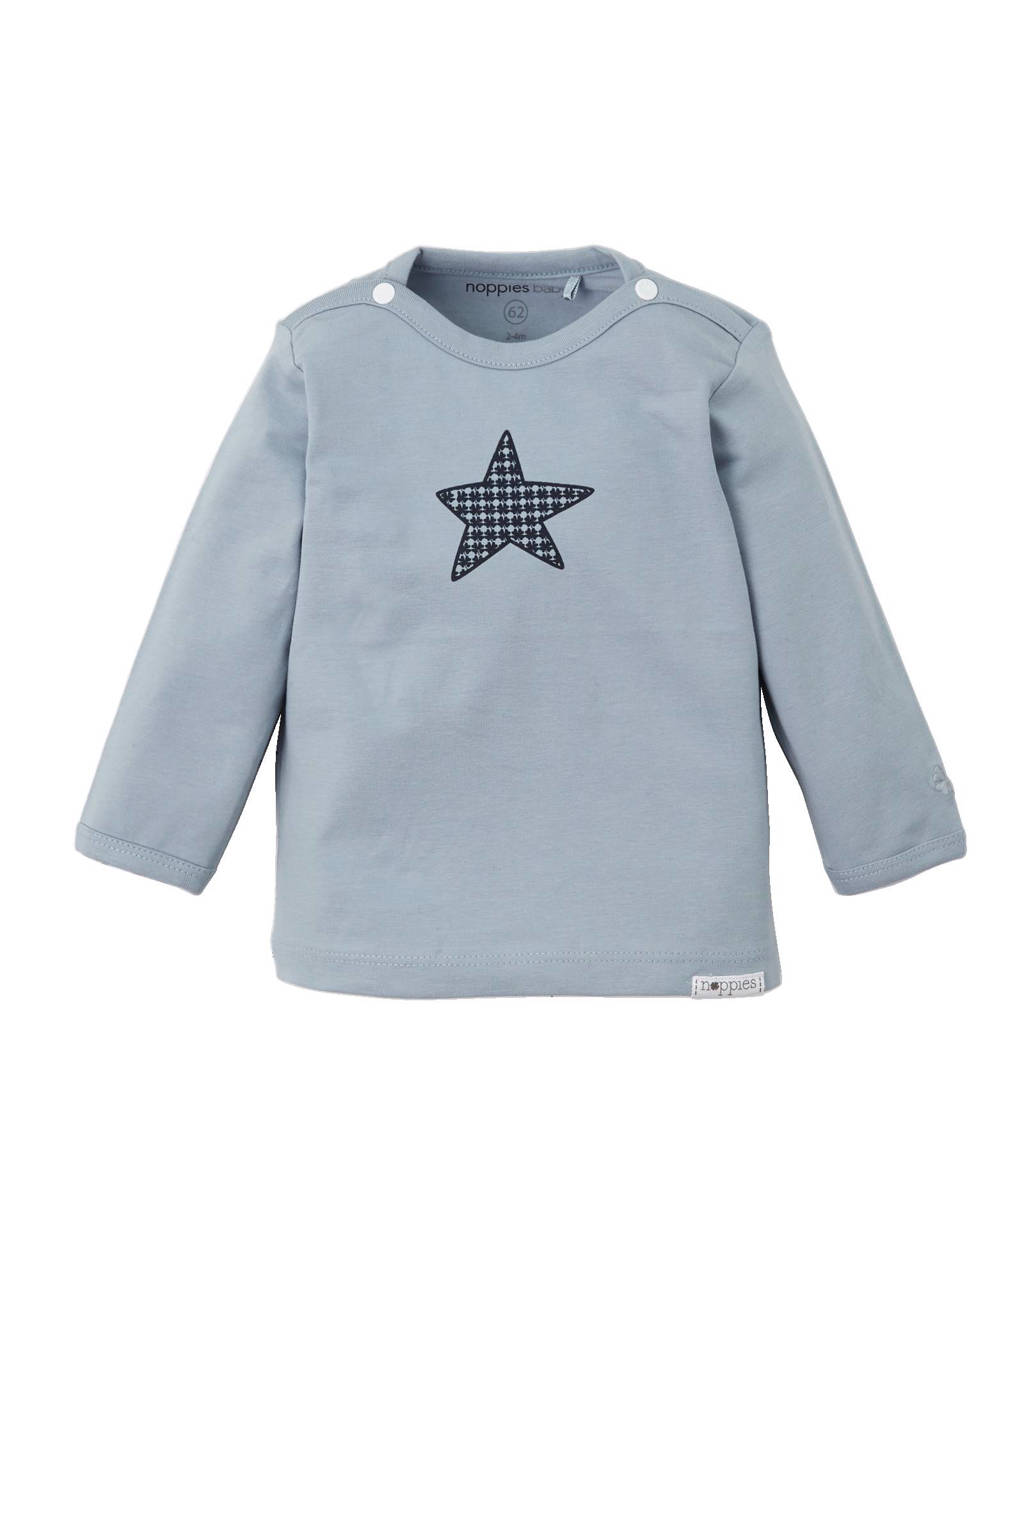 Noppies newborn baby longsleeve Grey blue, Blauw